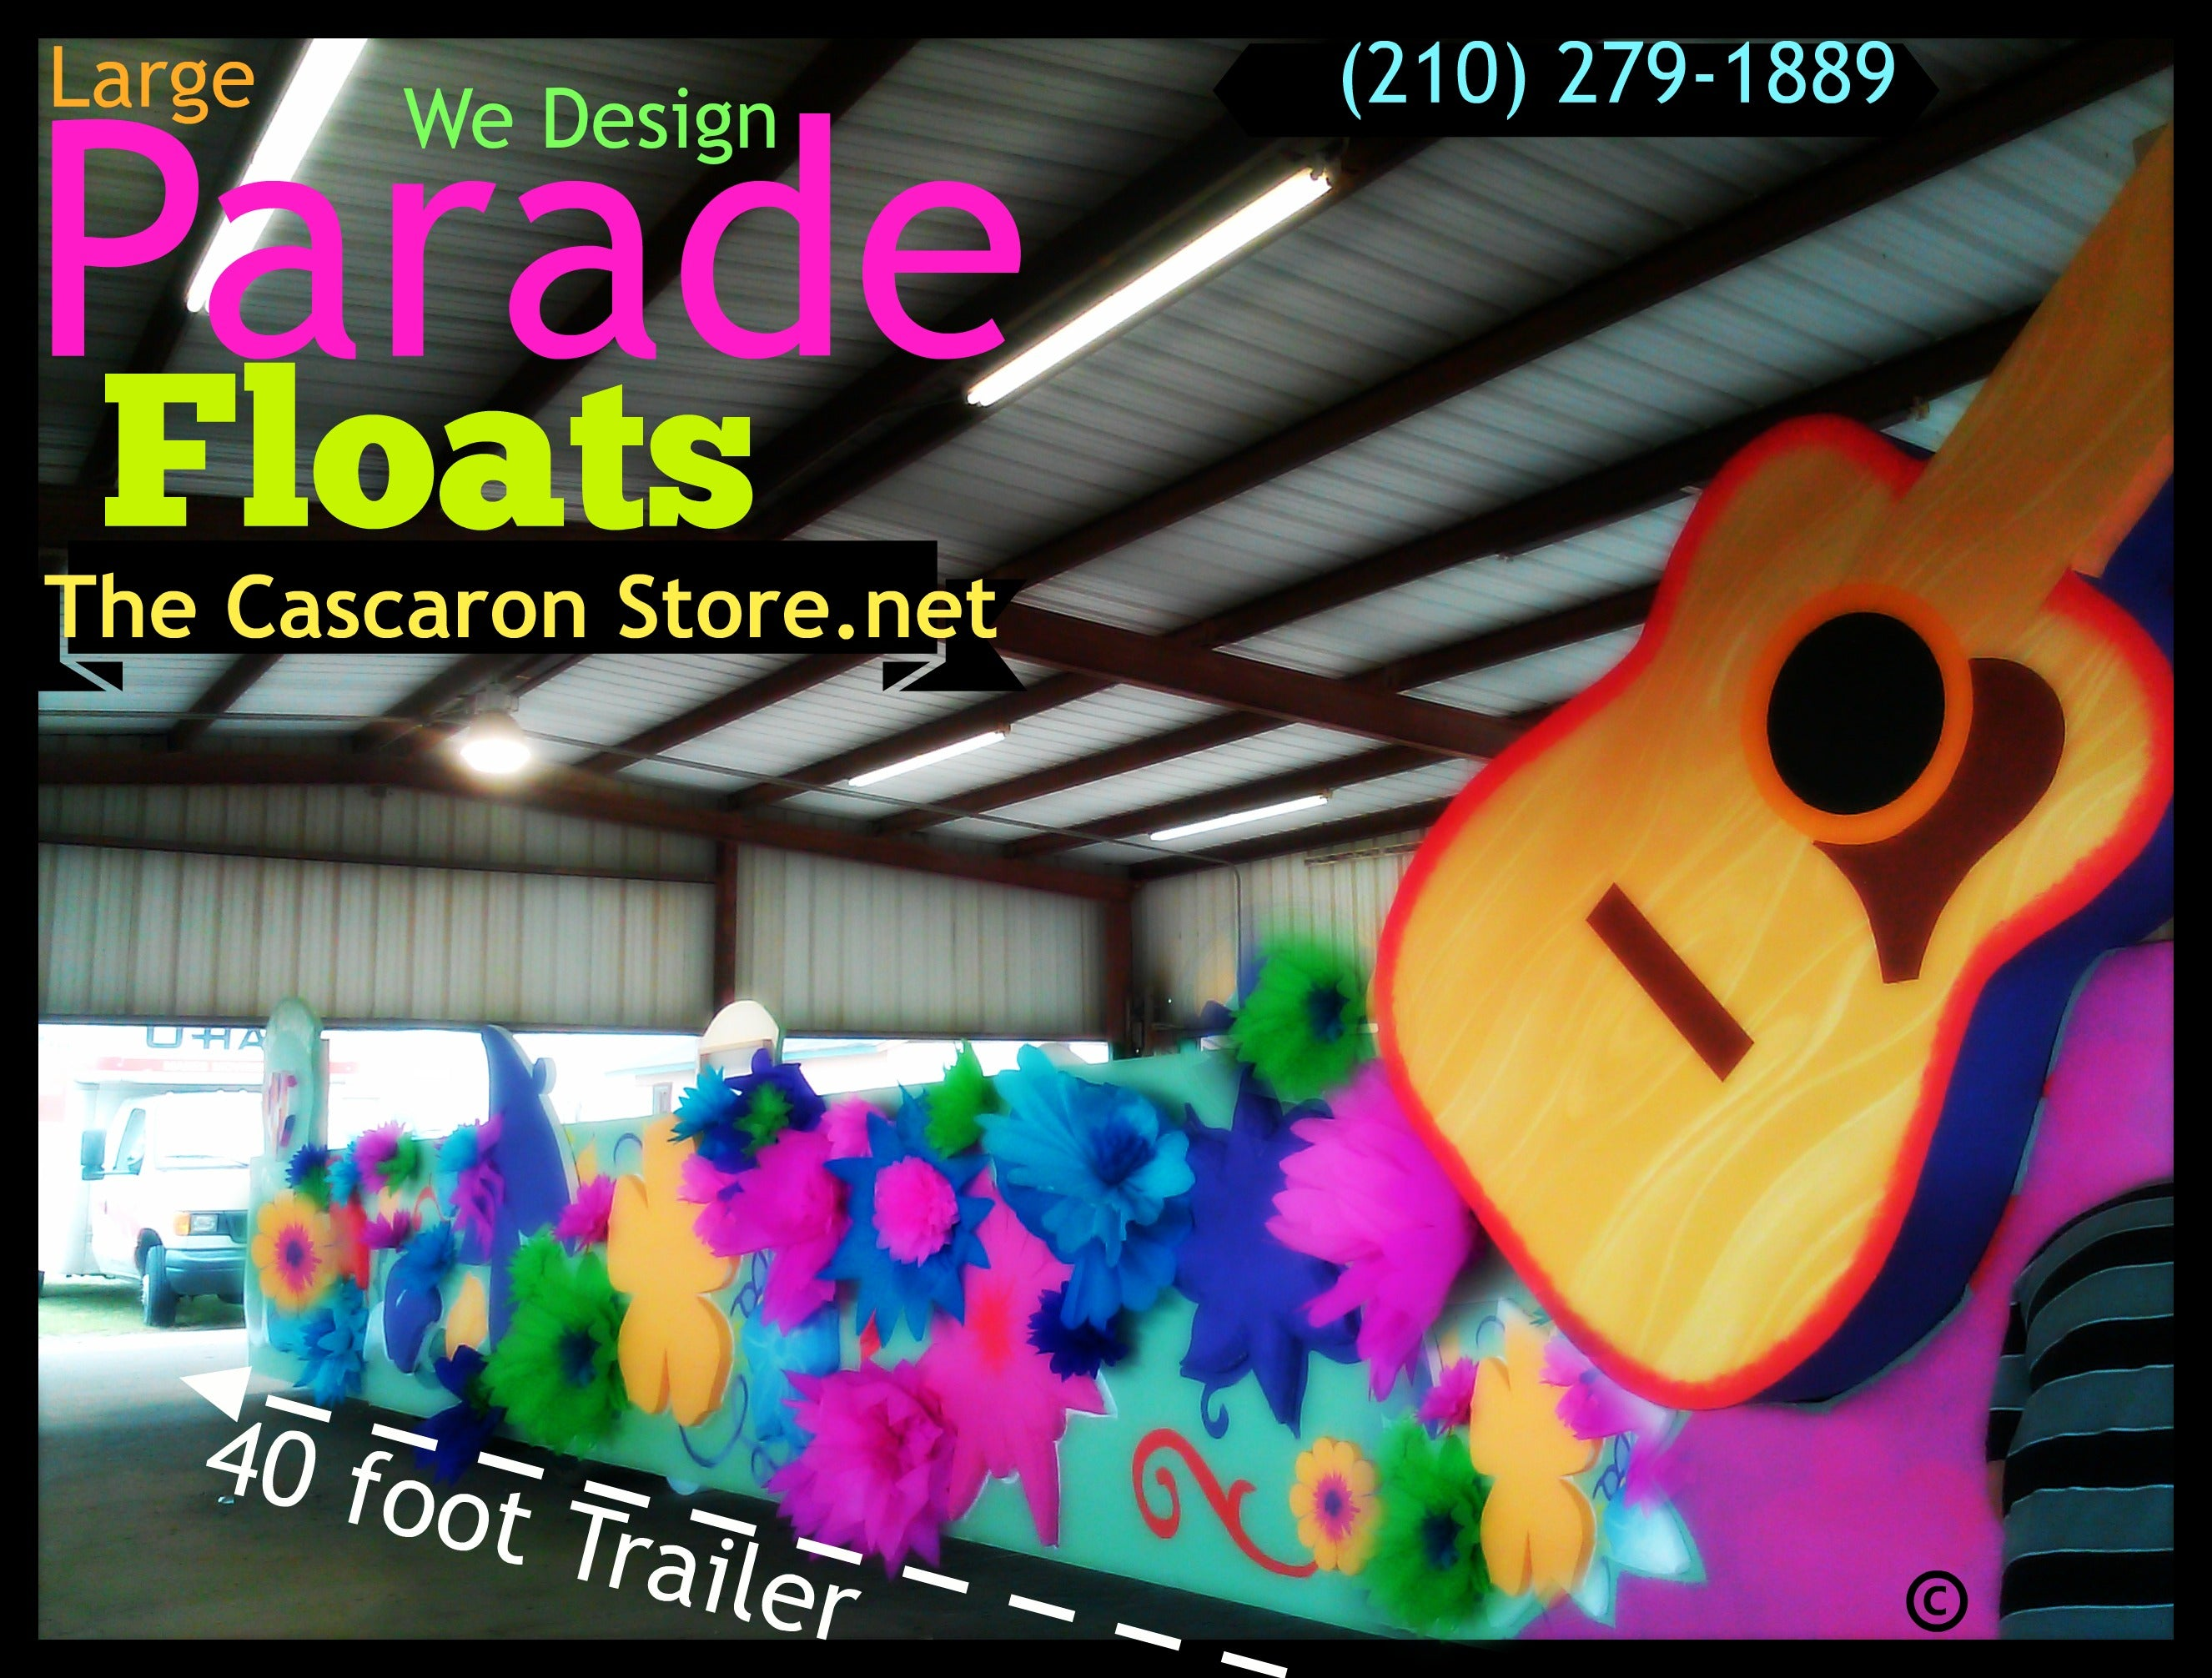 Parade Floats Designers that will impress your target audience in Texas